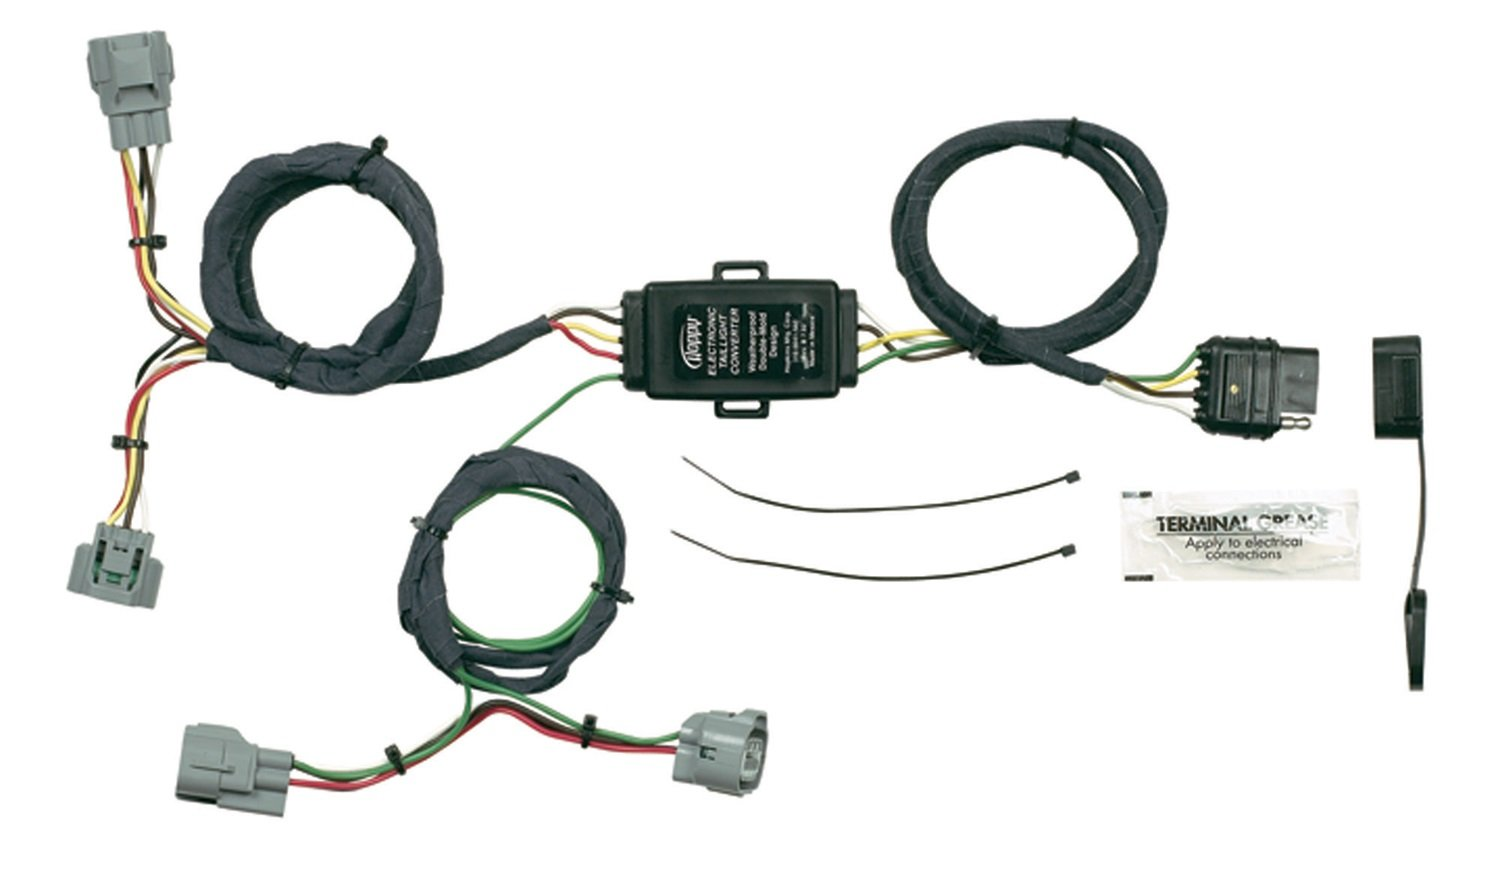 61J3Pn4wzzL._SL1500_ amazon com hopkins 43355 plug in simple vehicle wiring kit hopkins wire harness at cita.asia